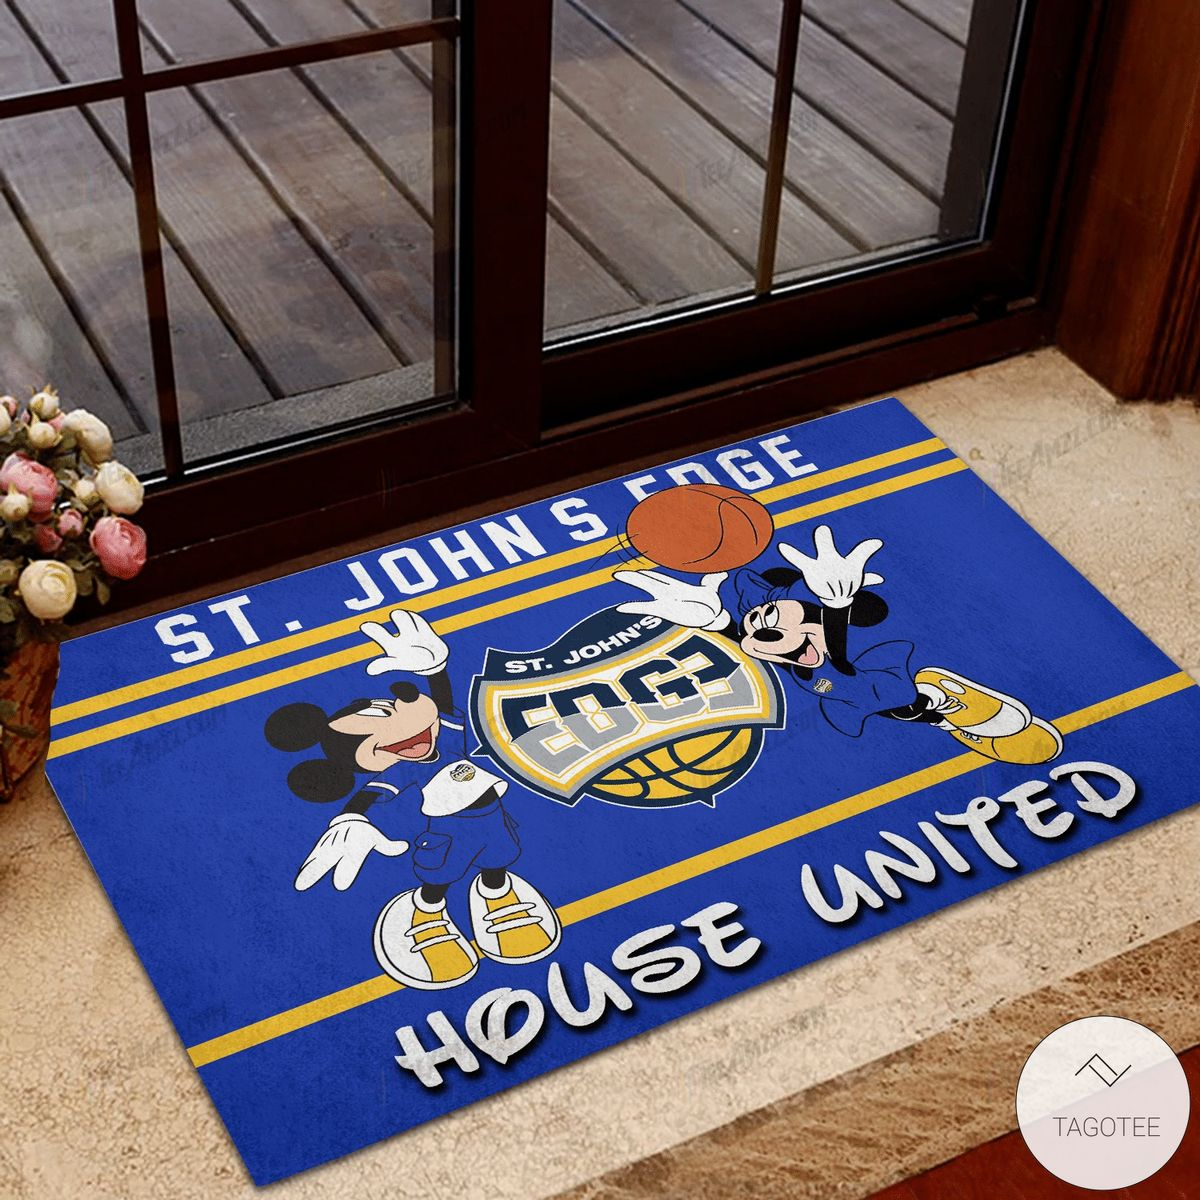 ST. John's Edge House United Mickey Mouse And Minnie Mouse Doormat